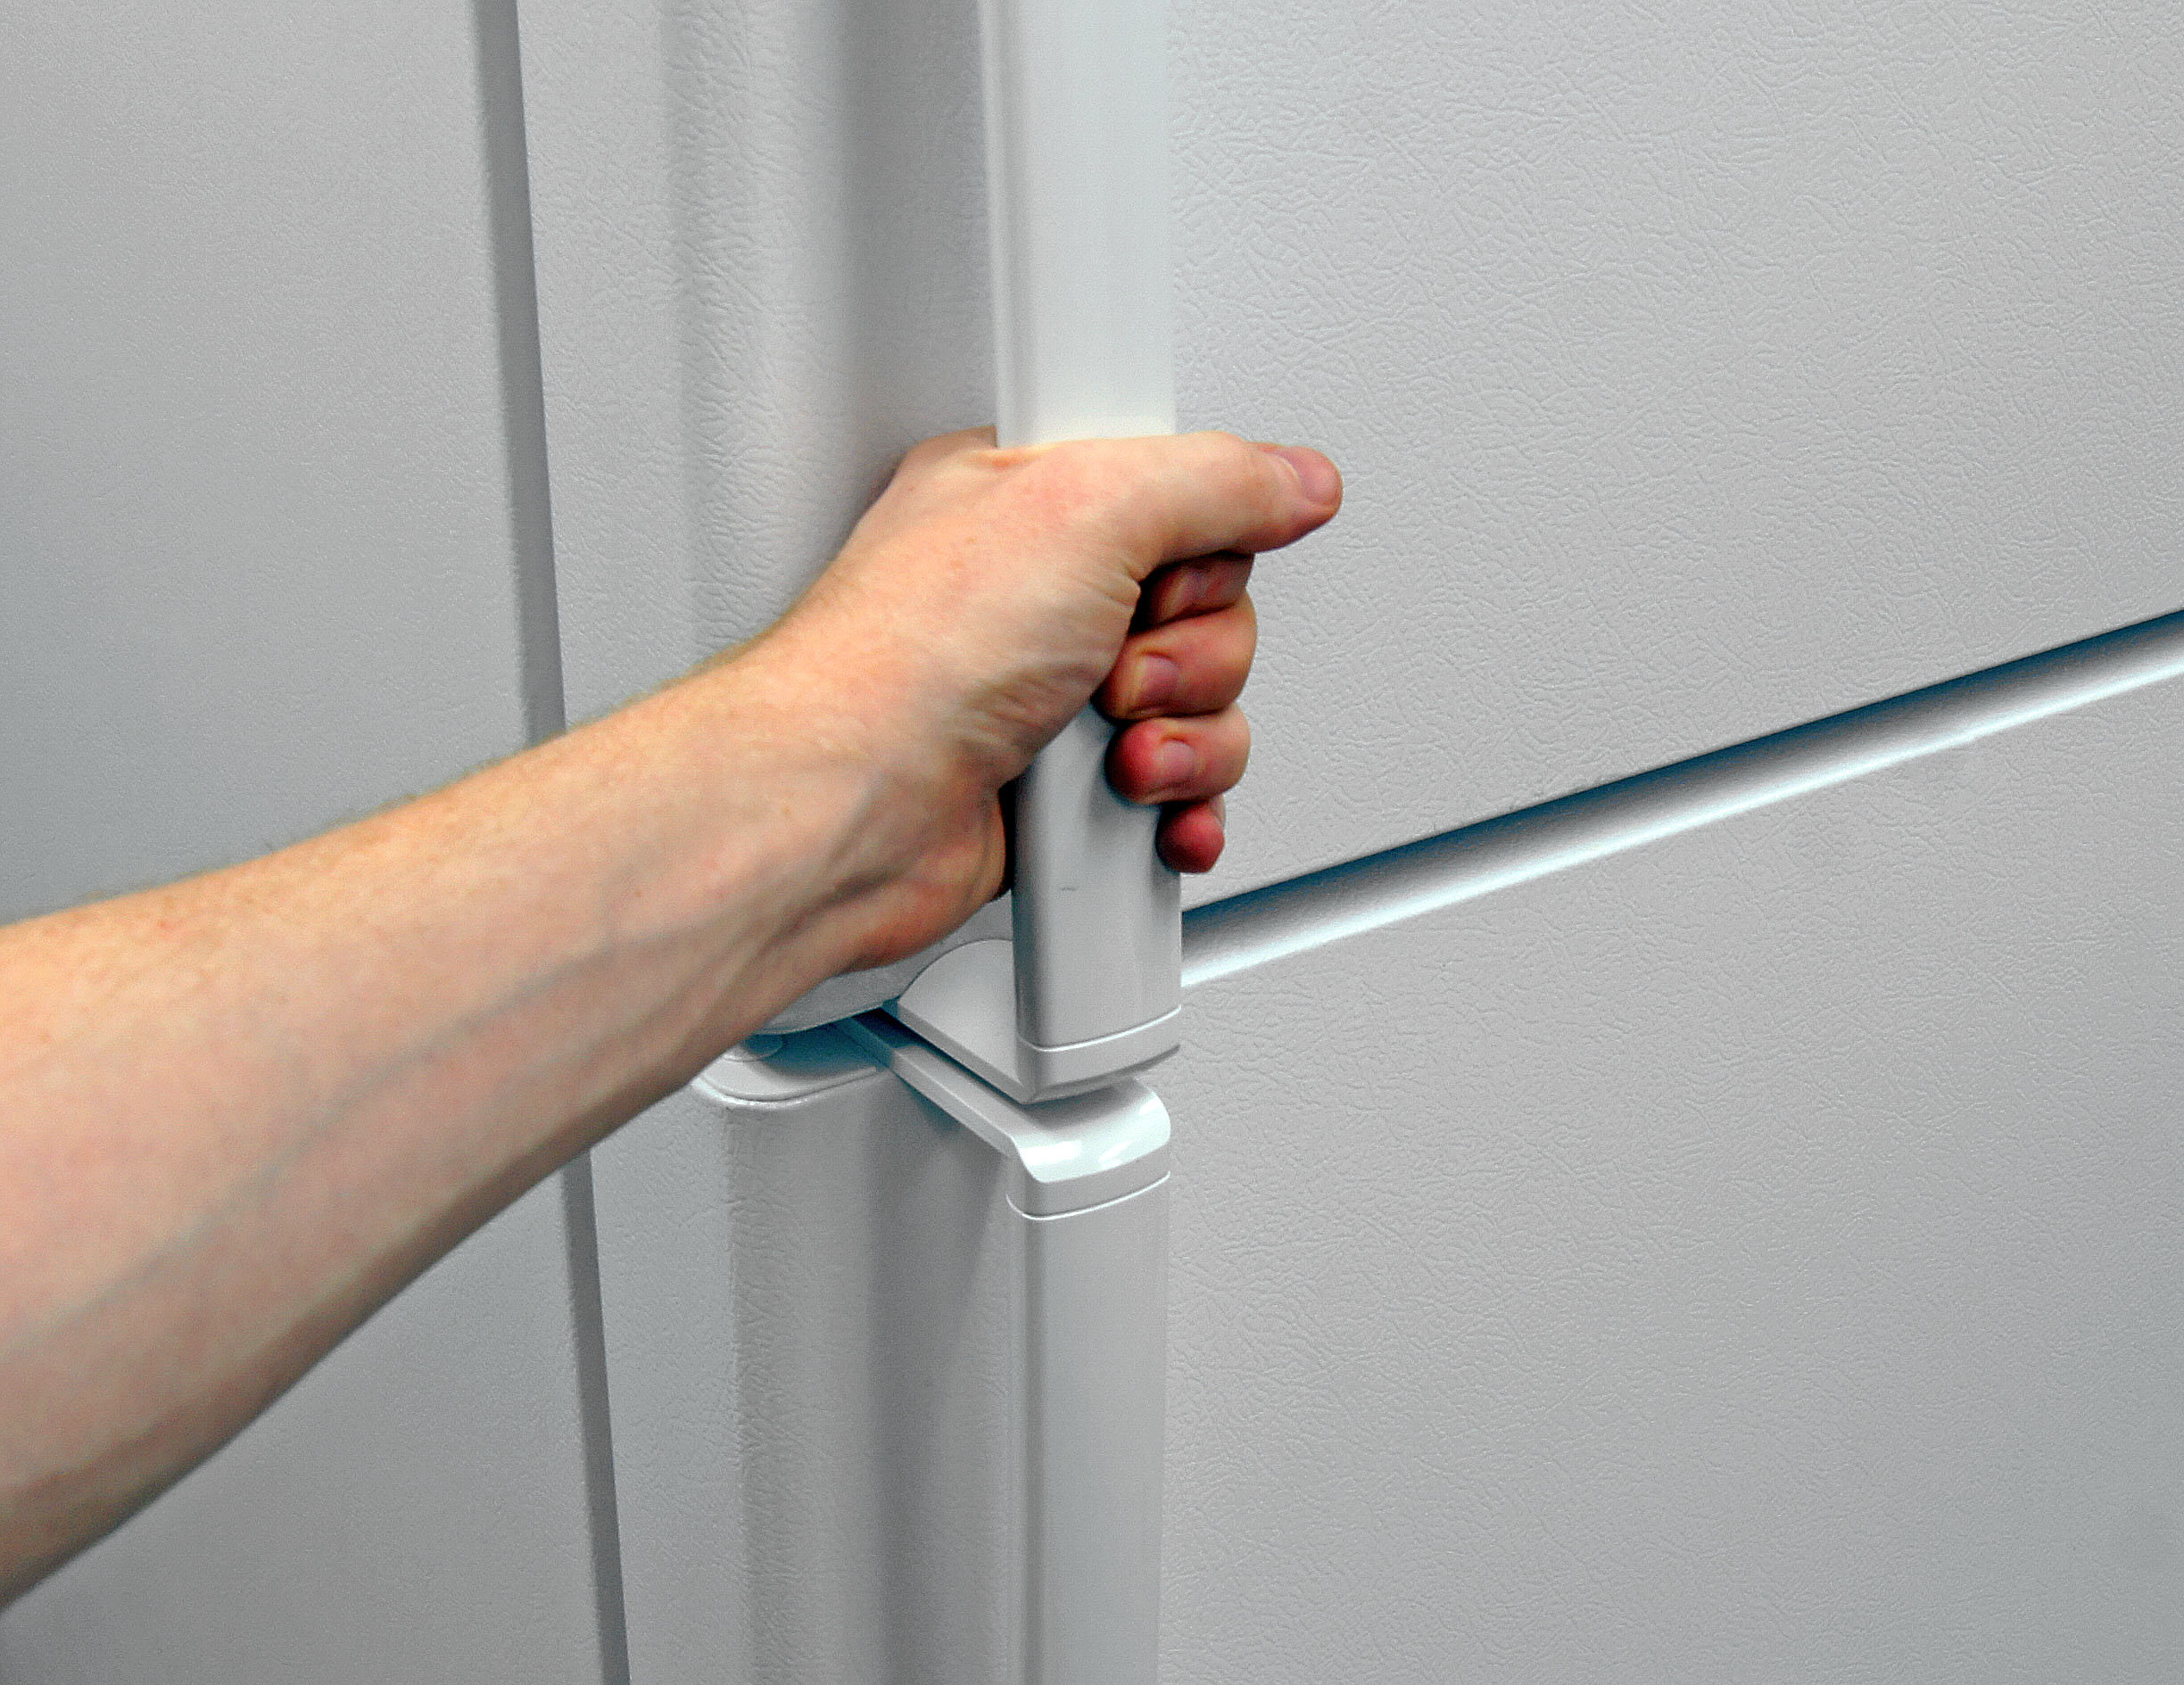 The GE GTS16DTHWW's smooth plastic handles feel sturdy enough to do their job comfortably.